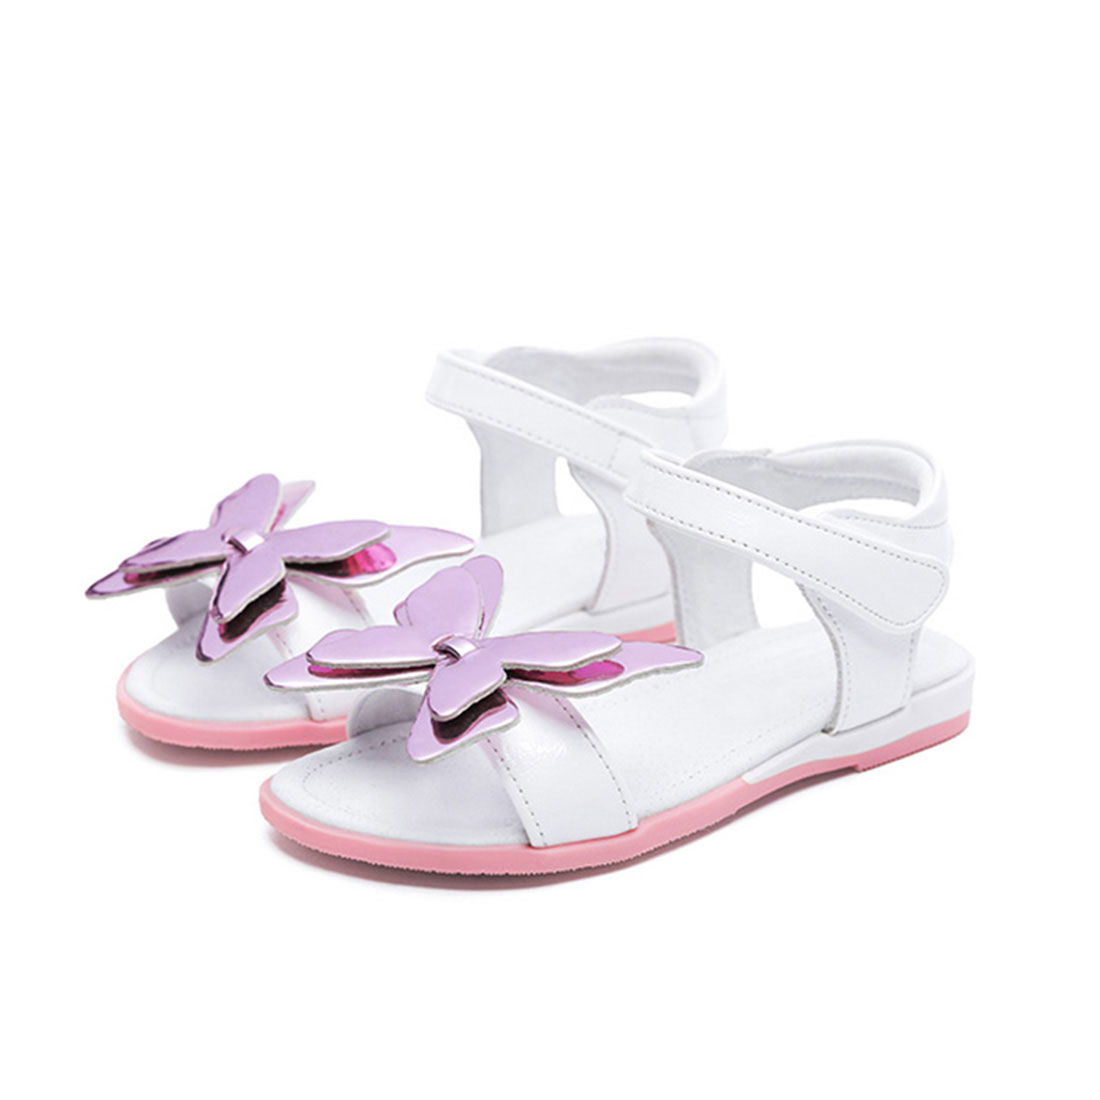 Leather white and pink flat cute summer fashion butterfly sandals kids footwear